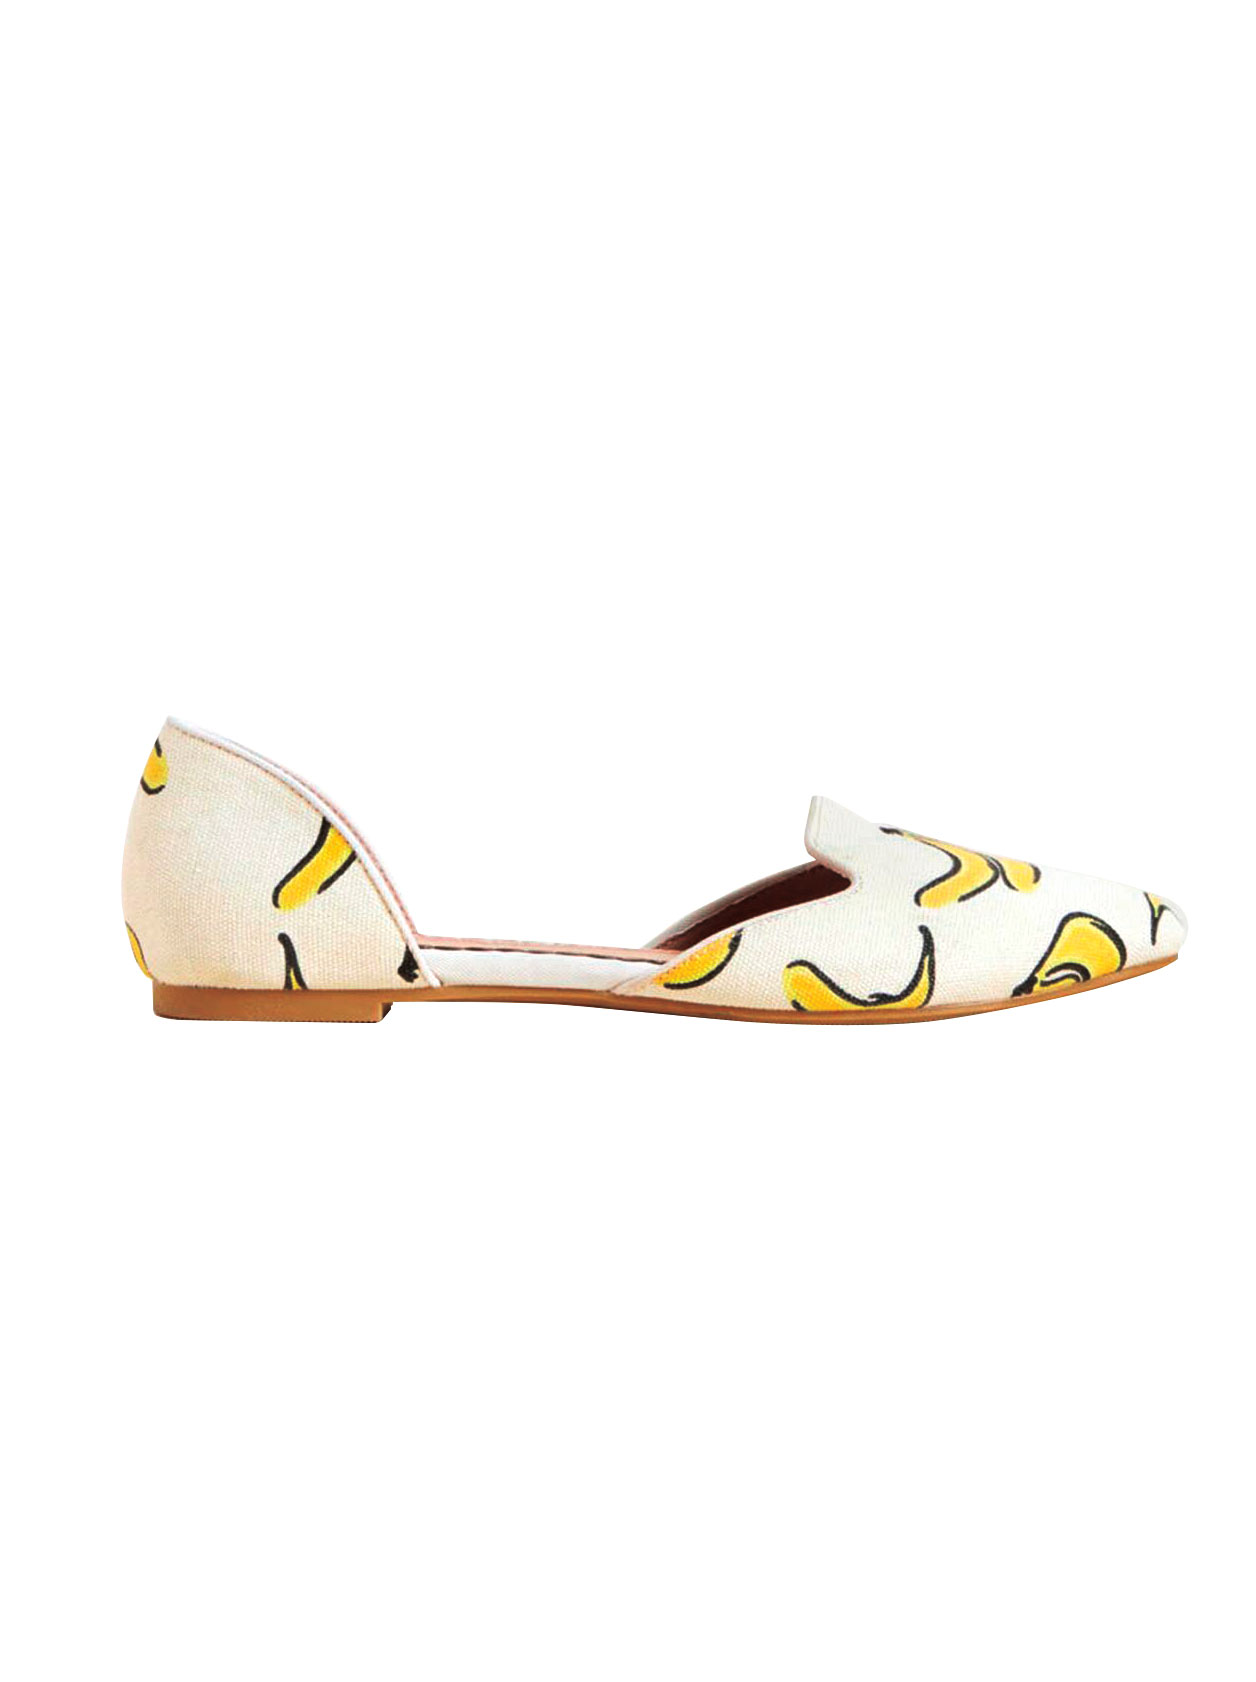 ModCloth Well-Stepped d'Orsay Flat